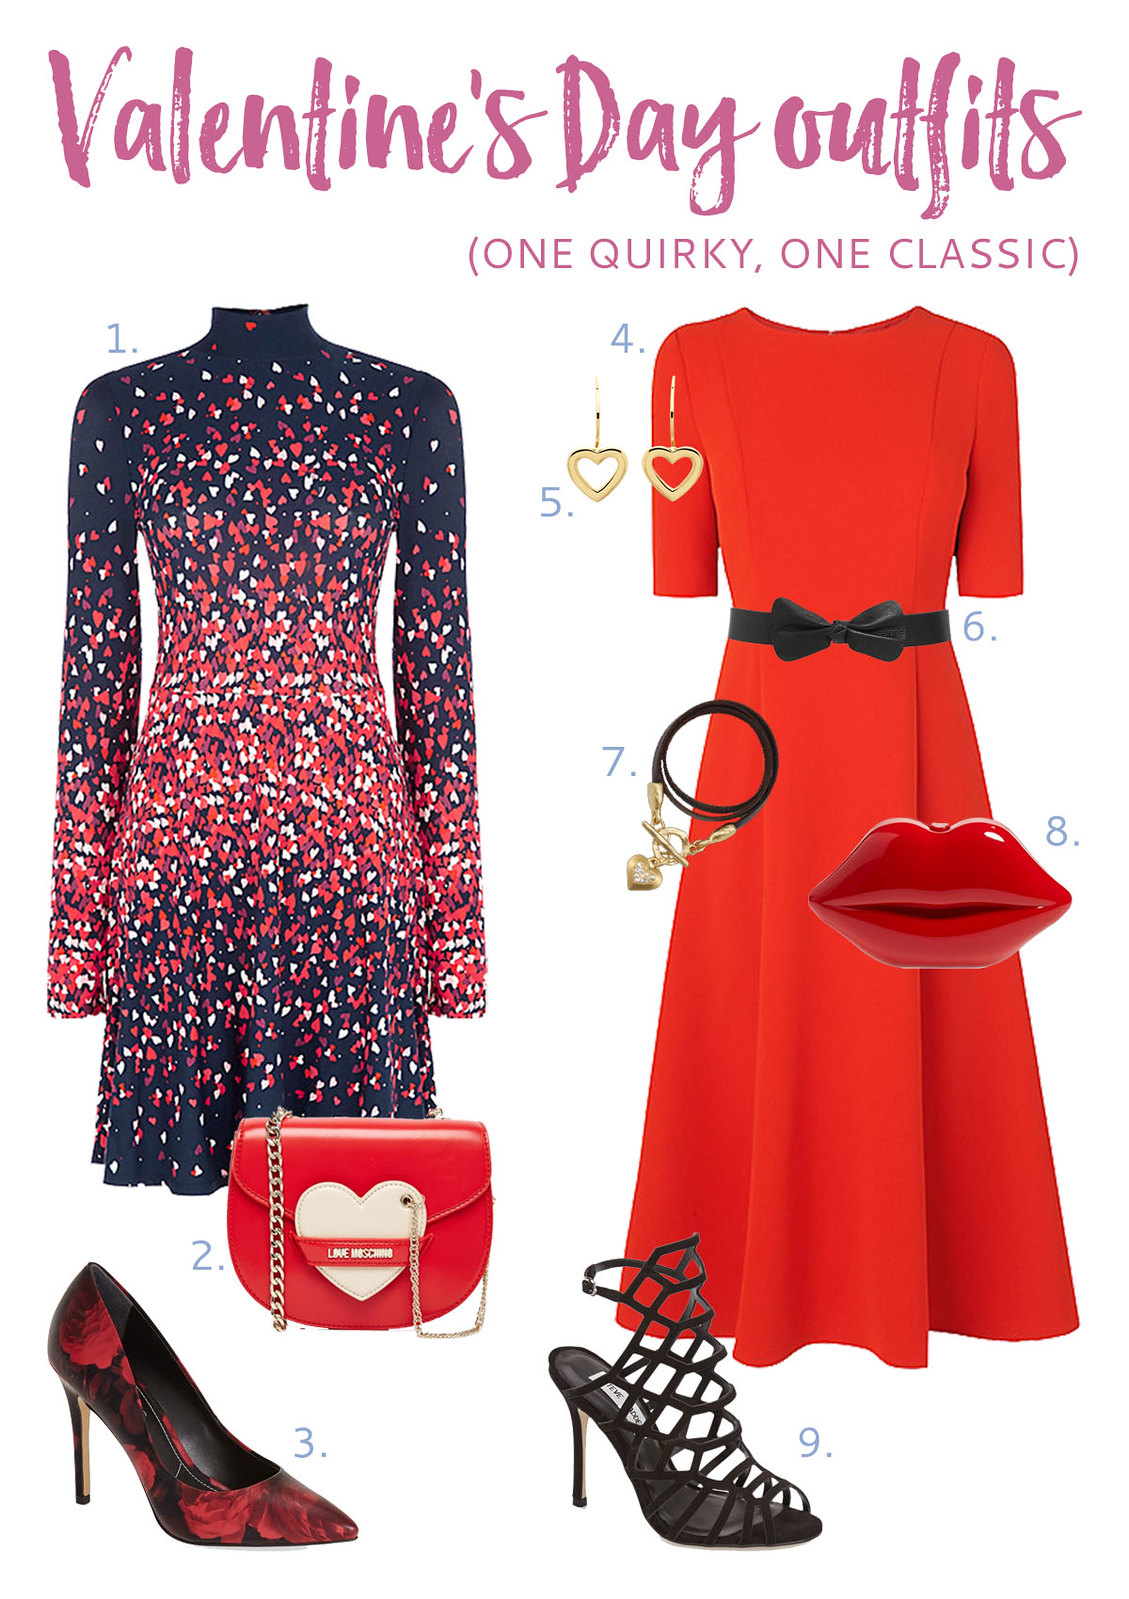 Valentine's Day Outfit Ideas | One quirky, one classic